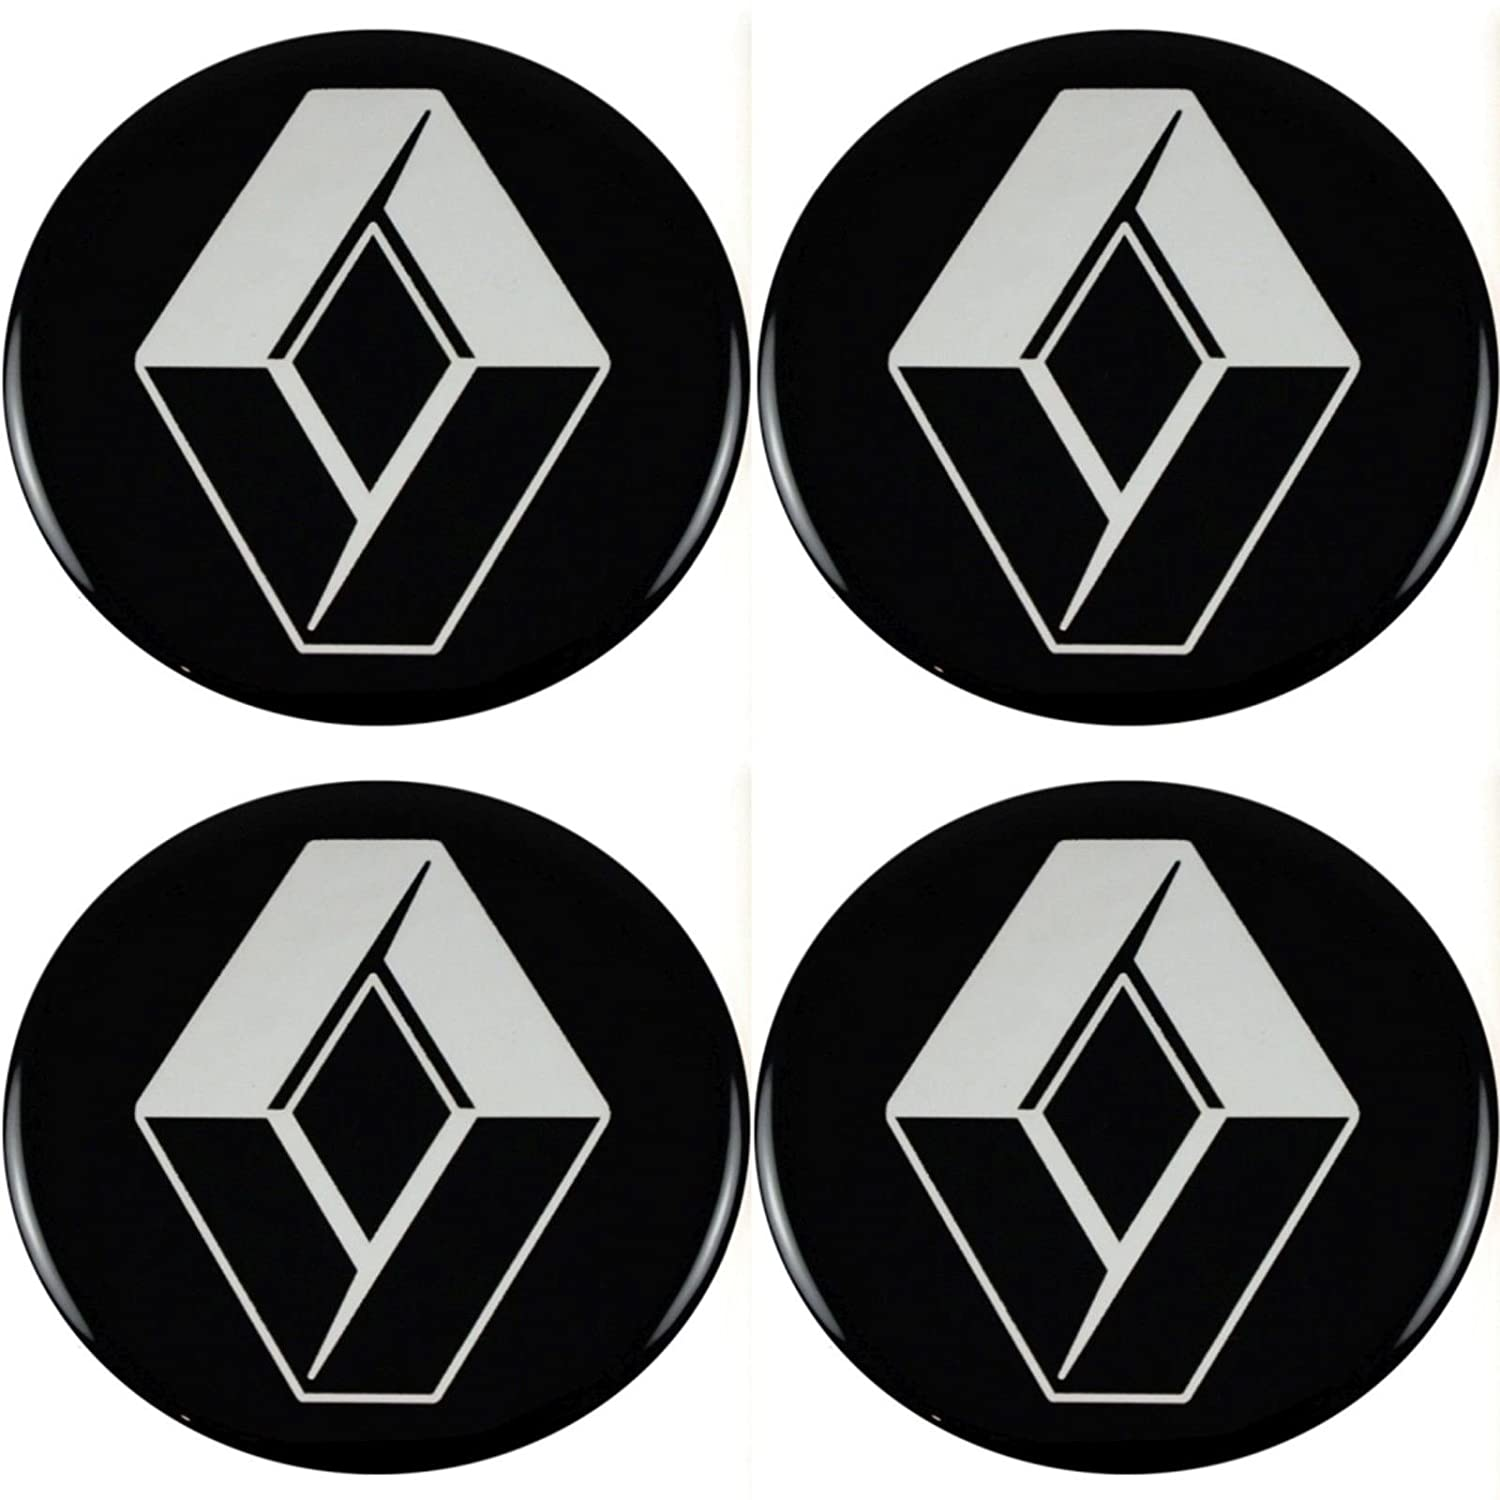 hub cap Renault emblem rims 4/ x 56/ mm wheel trim hub cover sticker logo